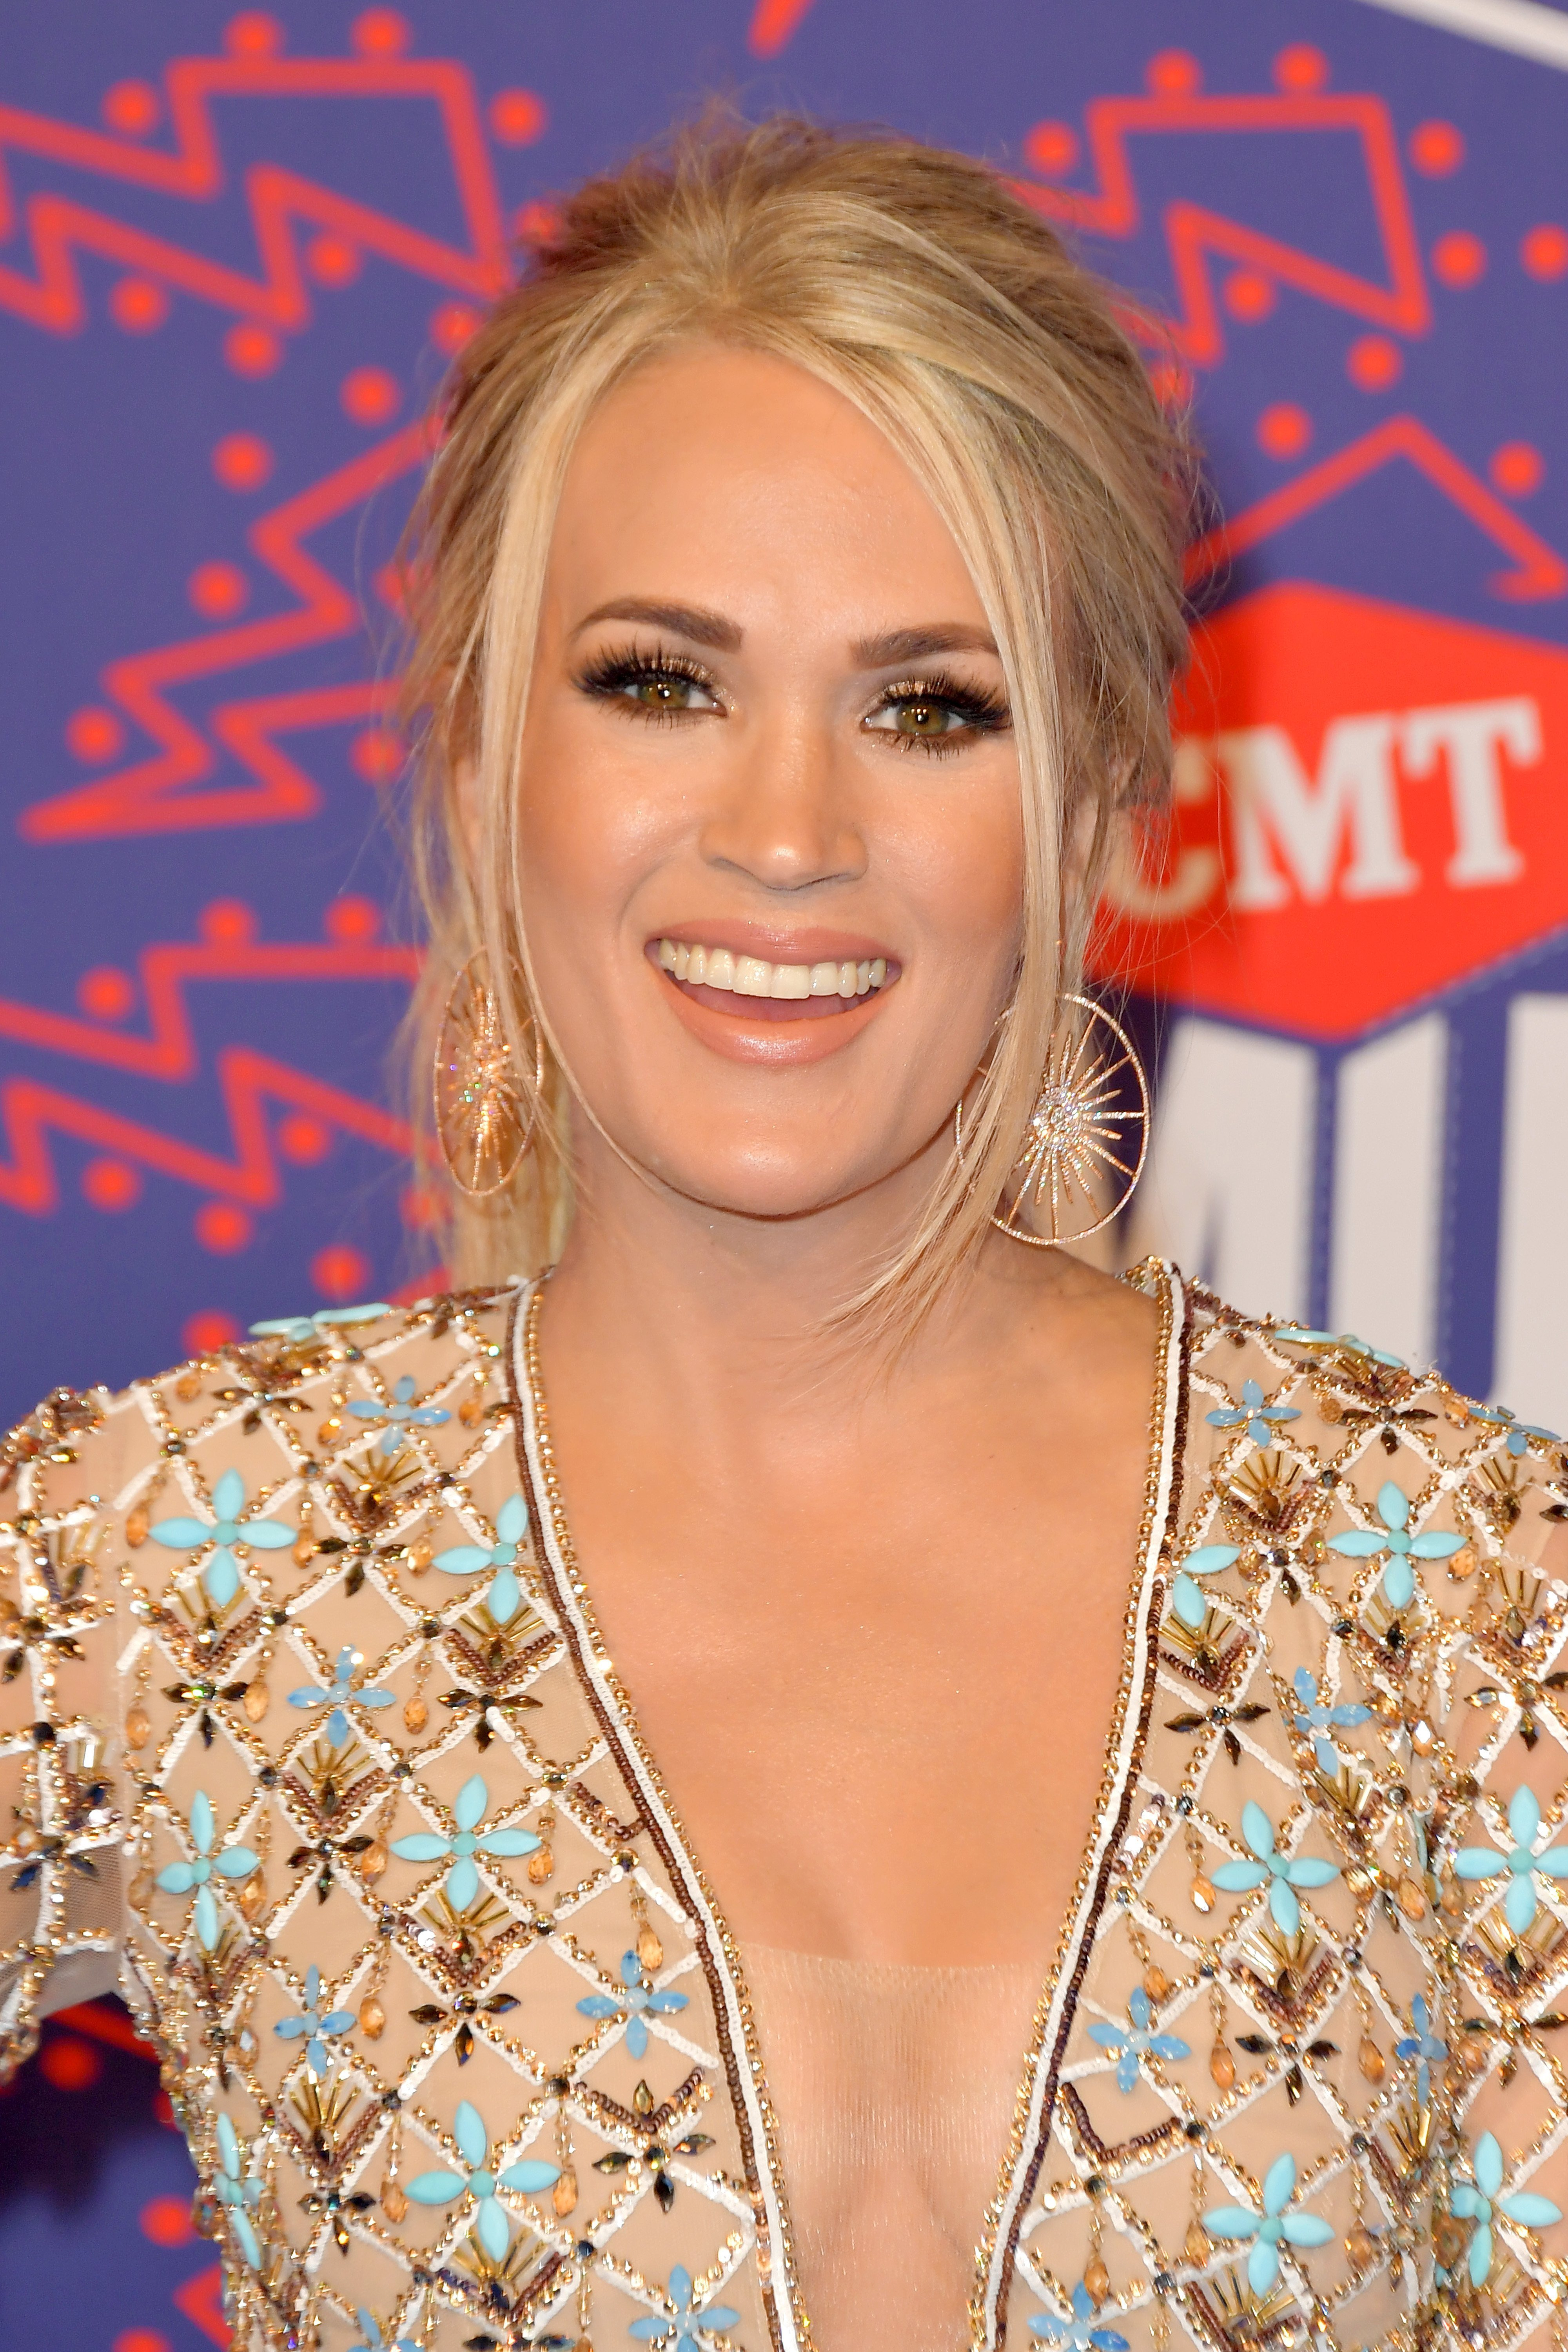 Carrie Underwood at the 2019 CMT Music Awards at Bridgestone Arena on June 05, 2019 in Nashville, Tennessee | Photo: Getty Images